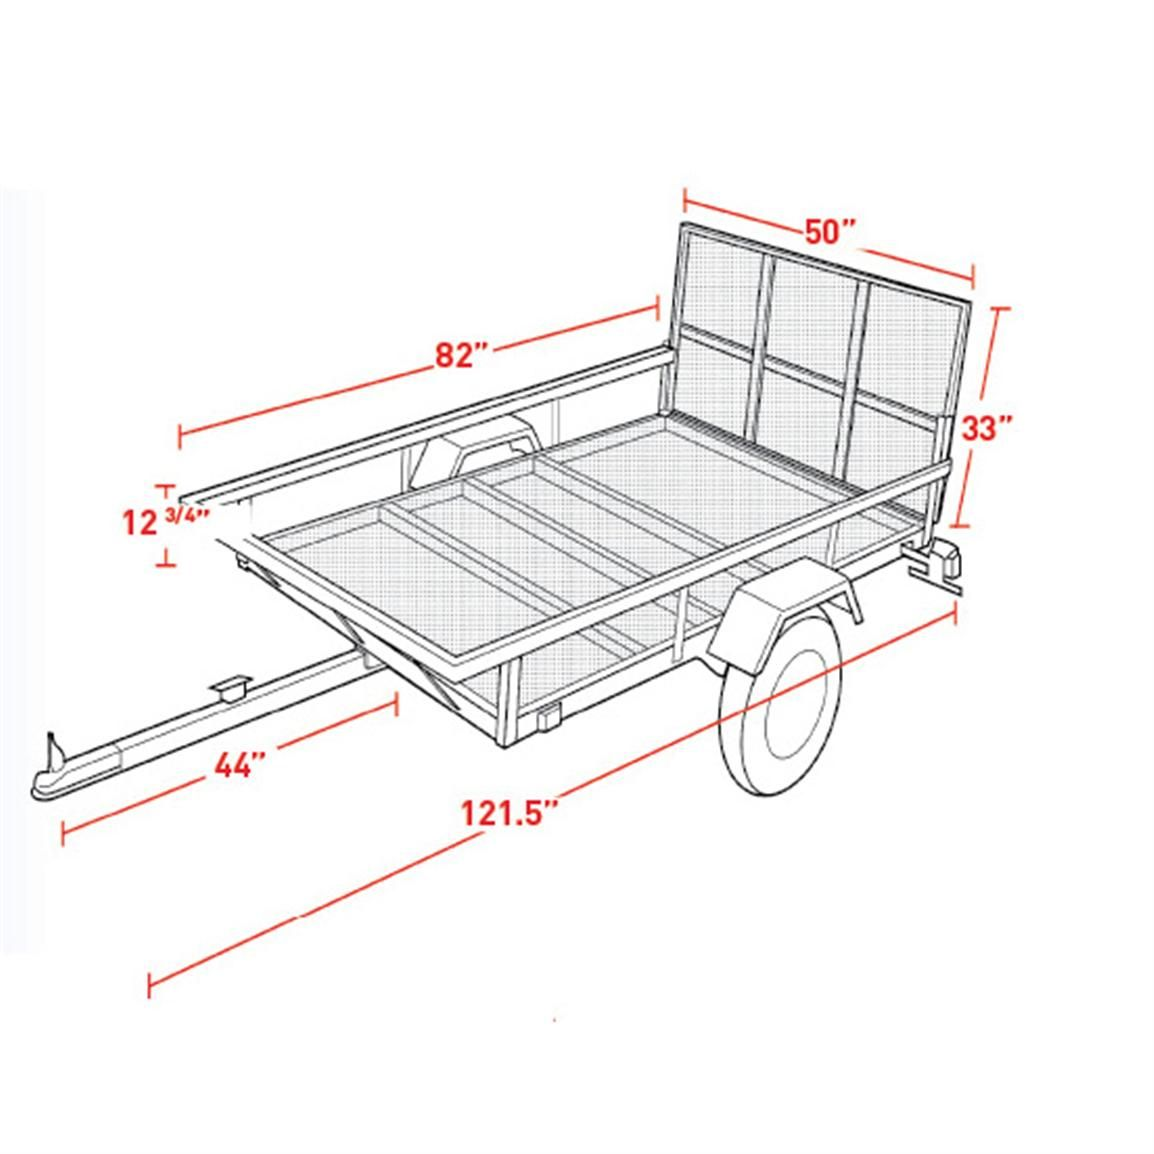 Northstar Sportstar I ATV/Utility Trailer Kit in 2019